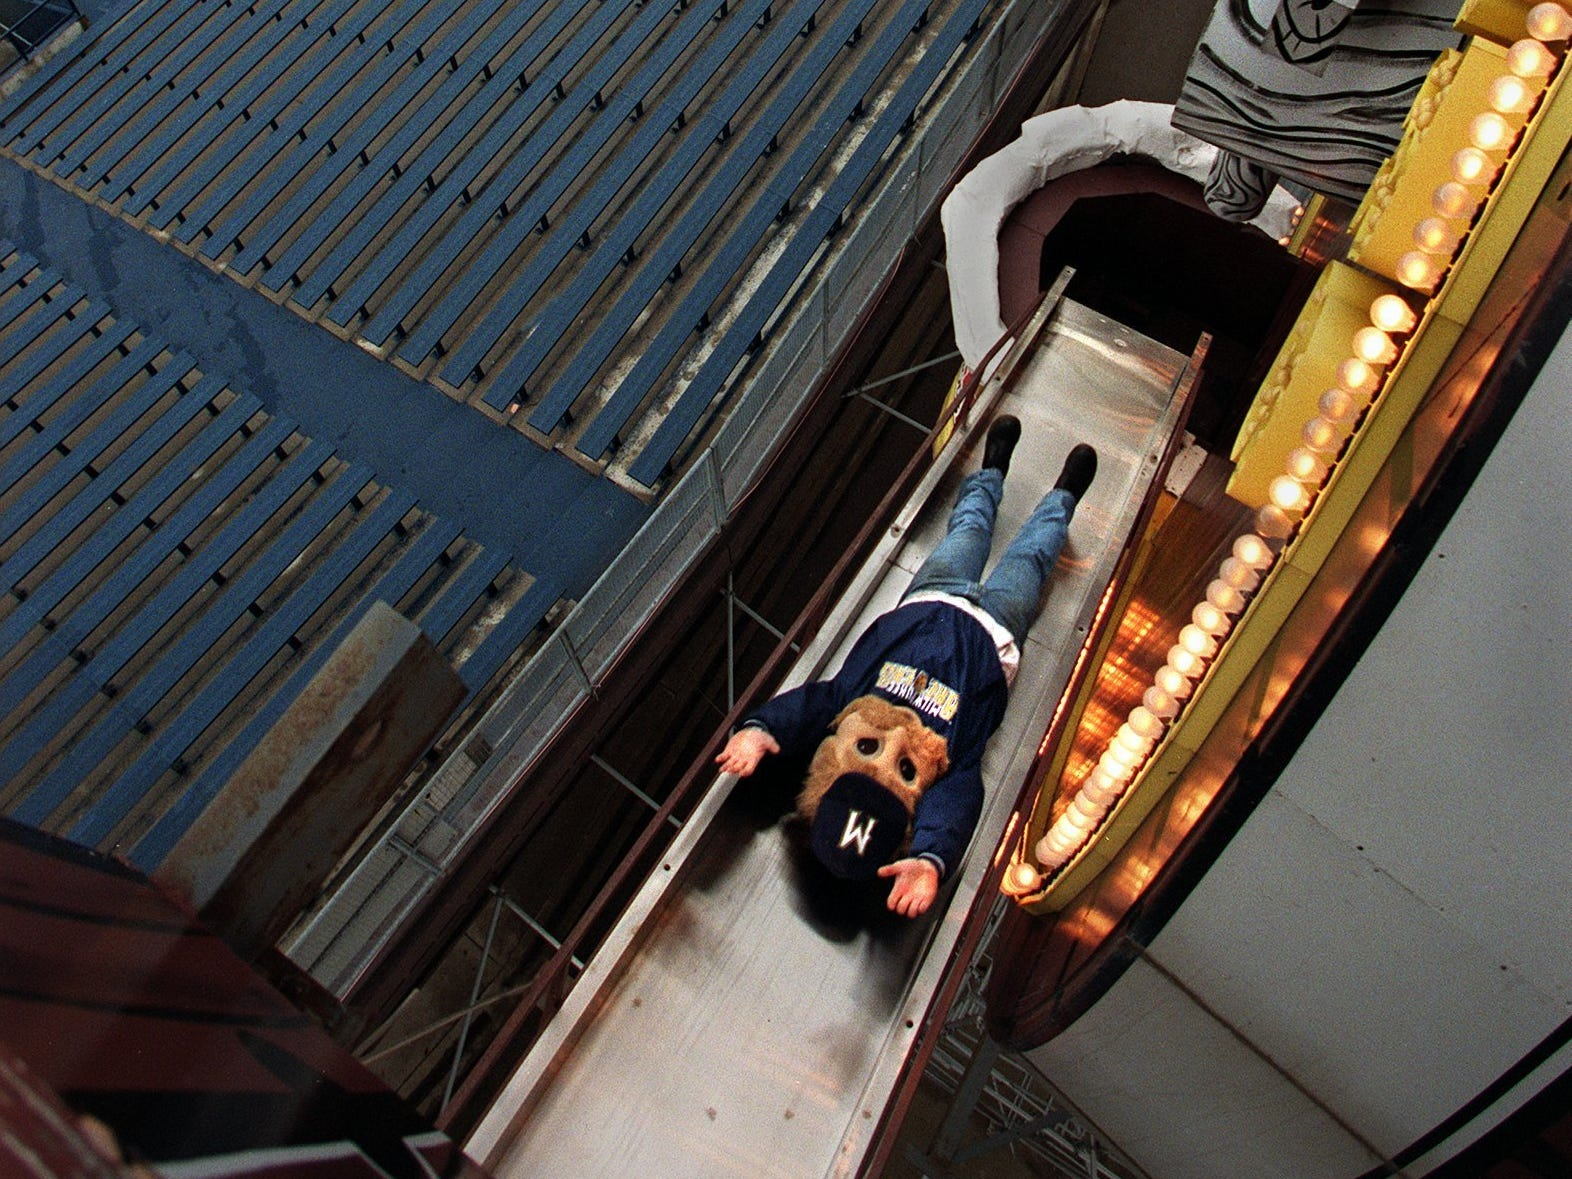 Bernie Brewer gets in some practice slides from his chalet into the giant beer mug in the bleachers at Milwaukee County Stadium on April 1, 1998. This photo was published in the April 2, 1998, Milwaukee Journal Sentinel.